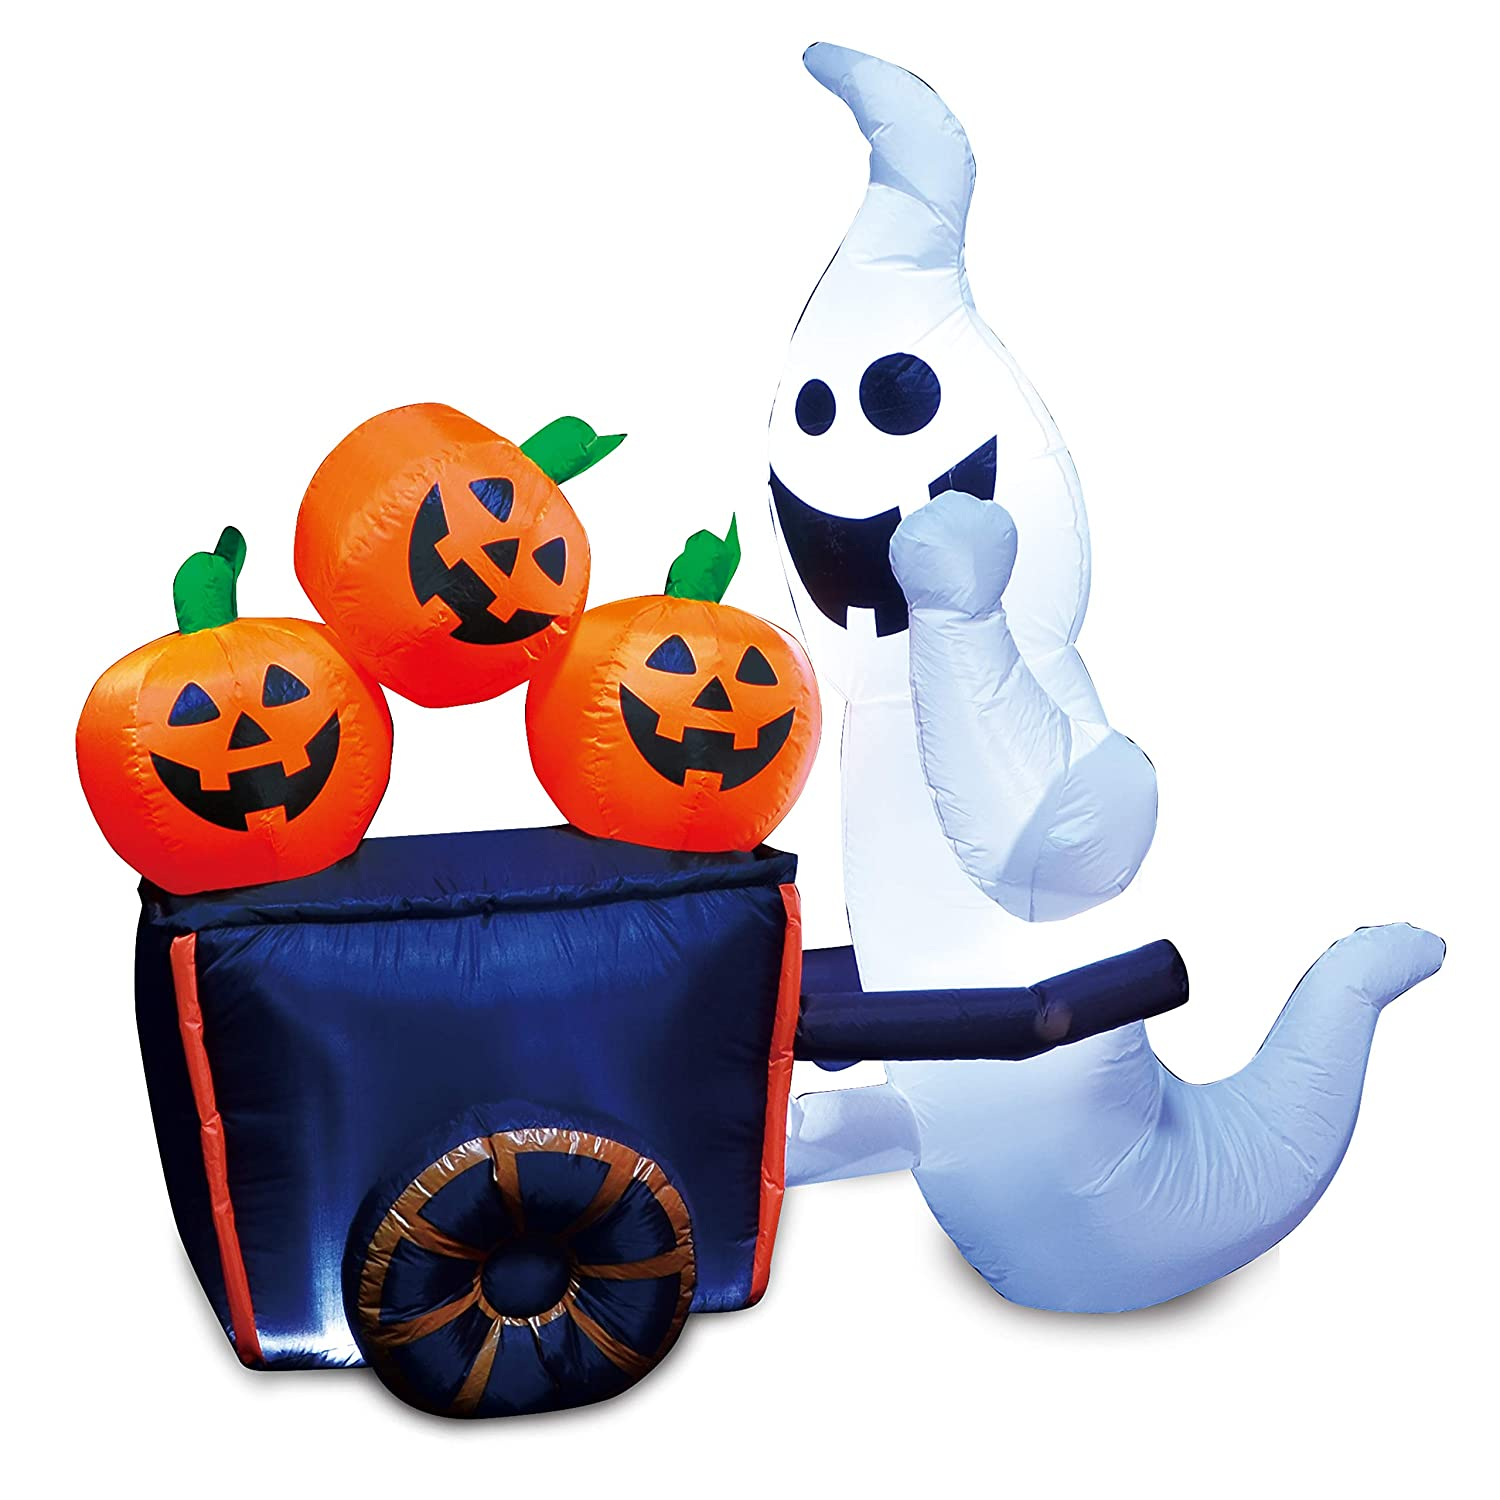 Joiedomi Halloween Inflatable Blow-up Ghost Pushing Cart of Pumpkins - 6 Ft Tall 4 Ft Wide Joyin Inc